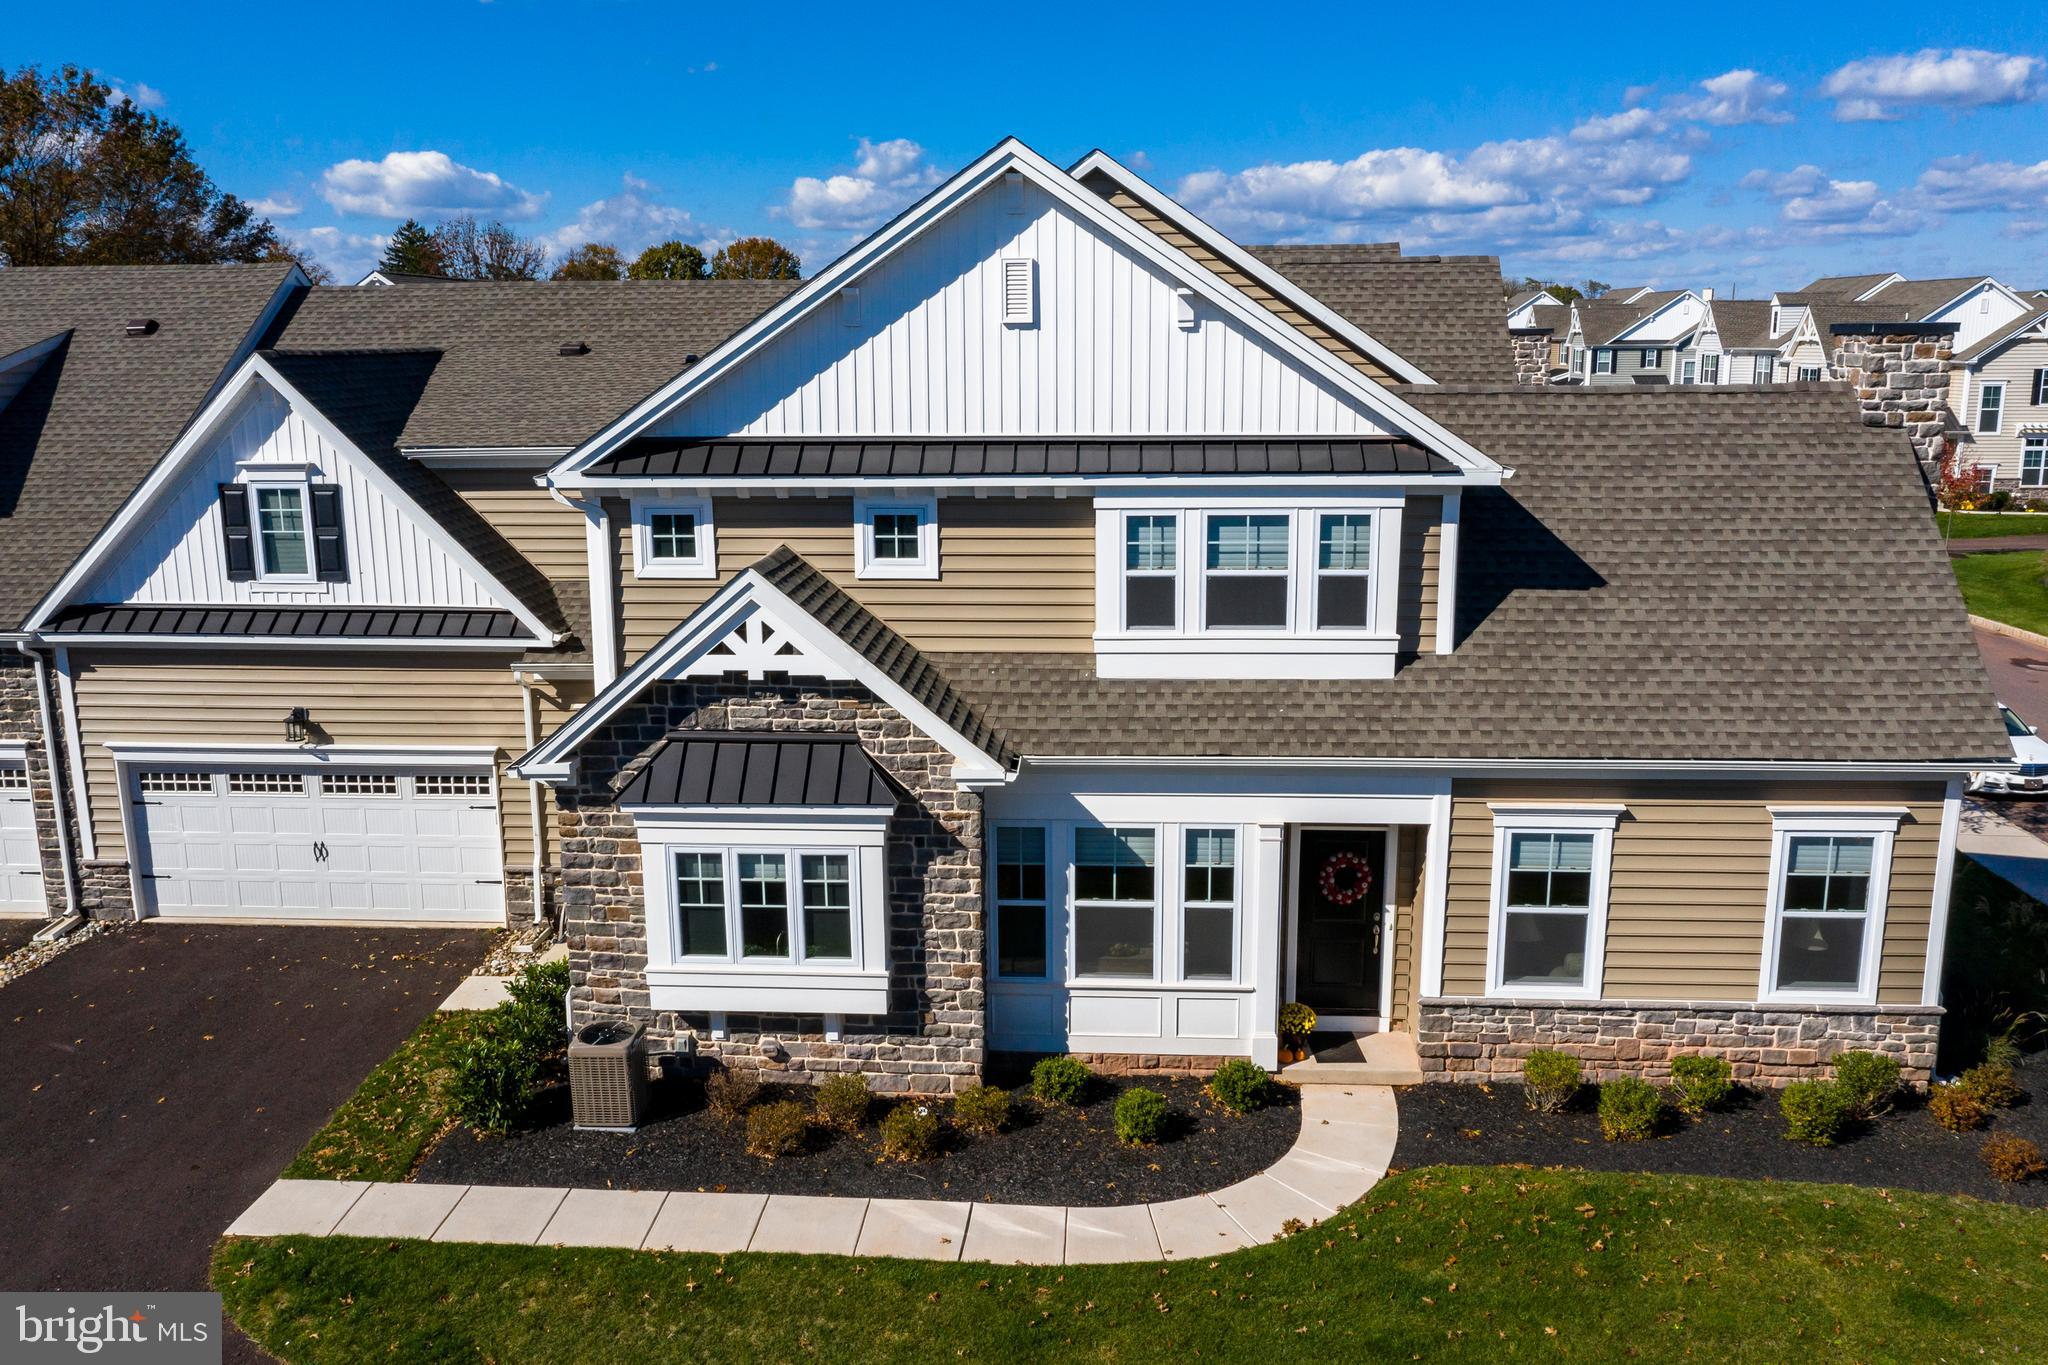 Your own personal luxury oasis awaits in this magnificent carriage home in award winning Spring Ford Area School District. This 3-bedroom 2.5 bath home has all the upgrades and amenities you could need to give you the feeling of resort living. Enter through your front door into the open floor plan and you are immediately drawn to your living room complete with 14-foot vaulted ceilings, breath-taking floor to ceiling stone fireplace with raised hearth and windows galore. In addition to your gorgeous views enjoy your morning coffee off your private deck. This room features a custom built in desk that was a $4500 upgrade. This room also boasts a two-foot bump out to give you additional space and comfort. If you enjoy entertaining this open floor plan is enhanced perfectly for you with the built in speakers in both the living room and kitchen. Make your way into the gourmet kitchen with dark espresso cabinets, granite counter tops and stainless-steel appliances. This home has a custom back-splash and double drawers under the gas cook top to give extra storage. The side panels on all cabinetry add to the style and sophistication that any homeowner would dream of in luxury living. The first floor holds the master suite with His and her closets. The walk-in closet is large enough to look like another bedroom with its ample storage and space. You will immediately be pleased with the master bath with over-sized walk in shower that has upgraded tile and fixtures. Your double bowl vanity is seamless for keeping all your essentials tucked away. Ascend upstairs to 2 additional bedrooms and bathroom. The bathroom has direct access from the hallway as well as the 3rd bedroom. Each room has a nice sized closet and offer plenty of privacy and space. If it~s an additional bedroom you seek you will find an unfinished area above the garage complete with electricity and insulated flooring making this room simple to finish if you desire. The loft area on this level completes the space and gives you another area where family can gather or use as an office. This home is only one year young, and all utilities and appliances are from 2018. You get all the comfort of a new home without the wait! Don~t delay in scheduling a tour and fall in love with your forever home.Buyer will be offered a 1 year House Membership to Spring Ford Country Club does not include monthly minimum food cost.